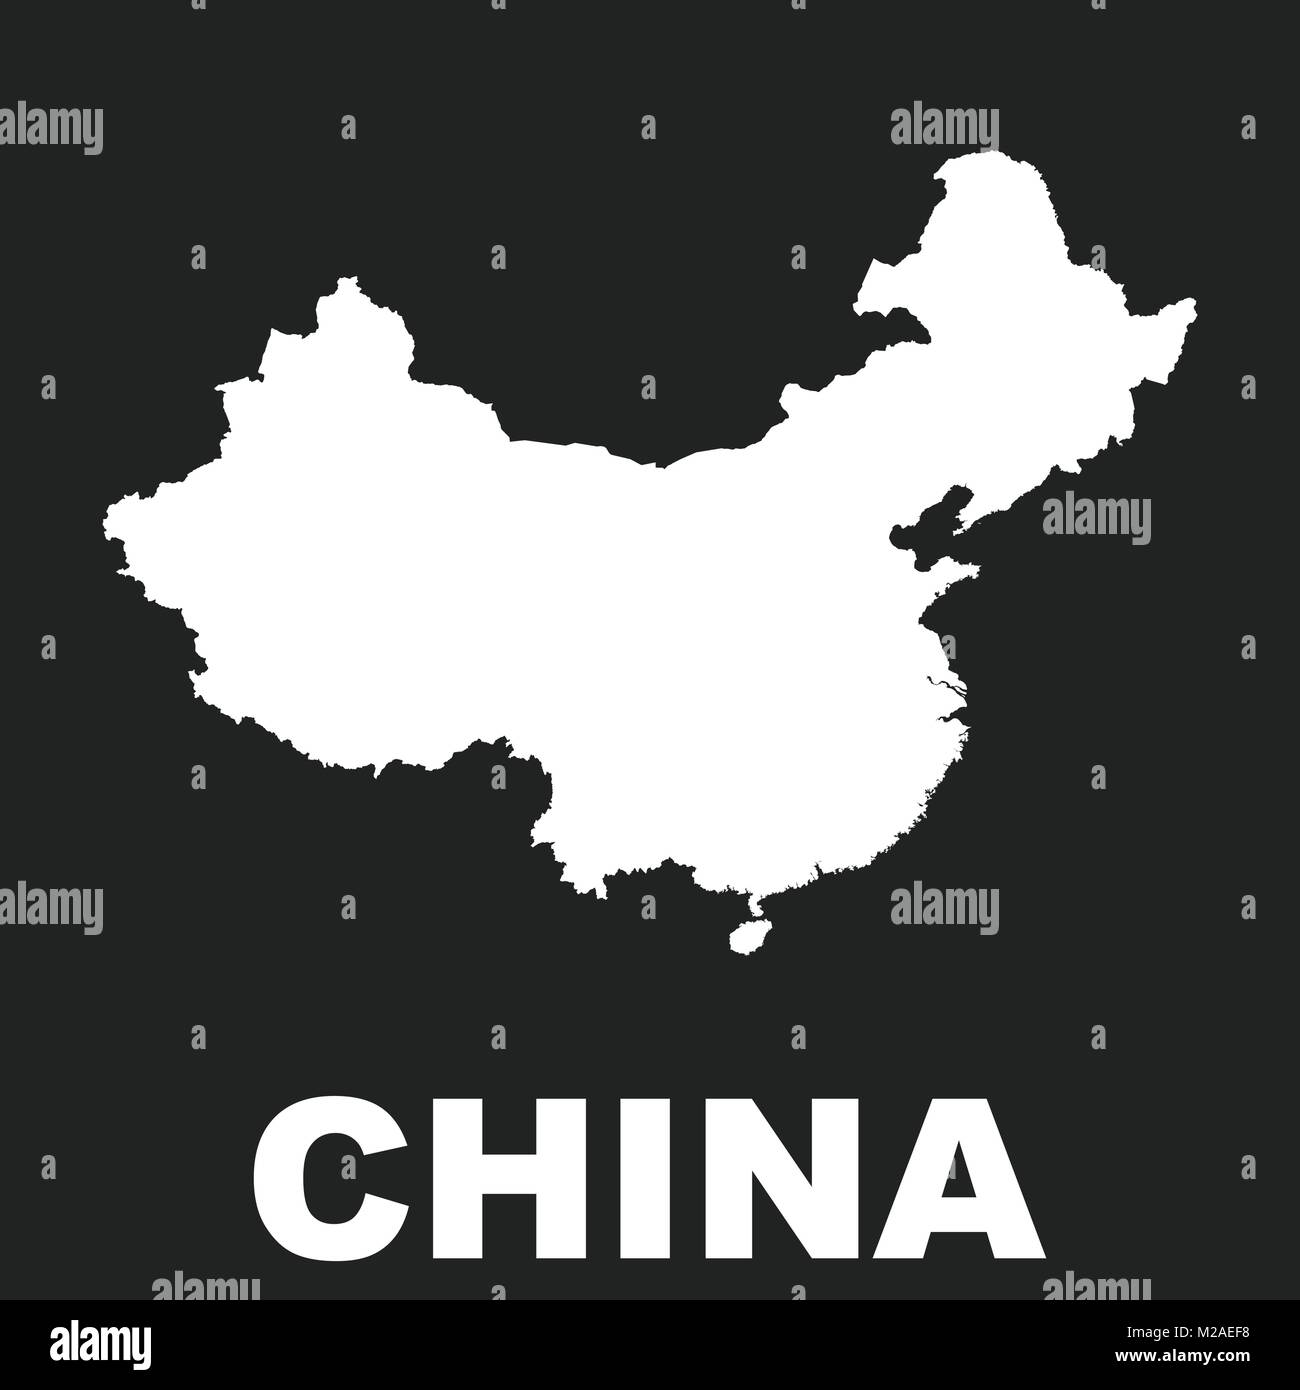 China map. Flat vector illustration on black background - Stock Vector